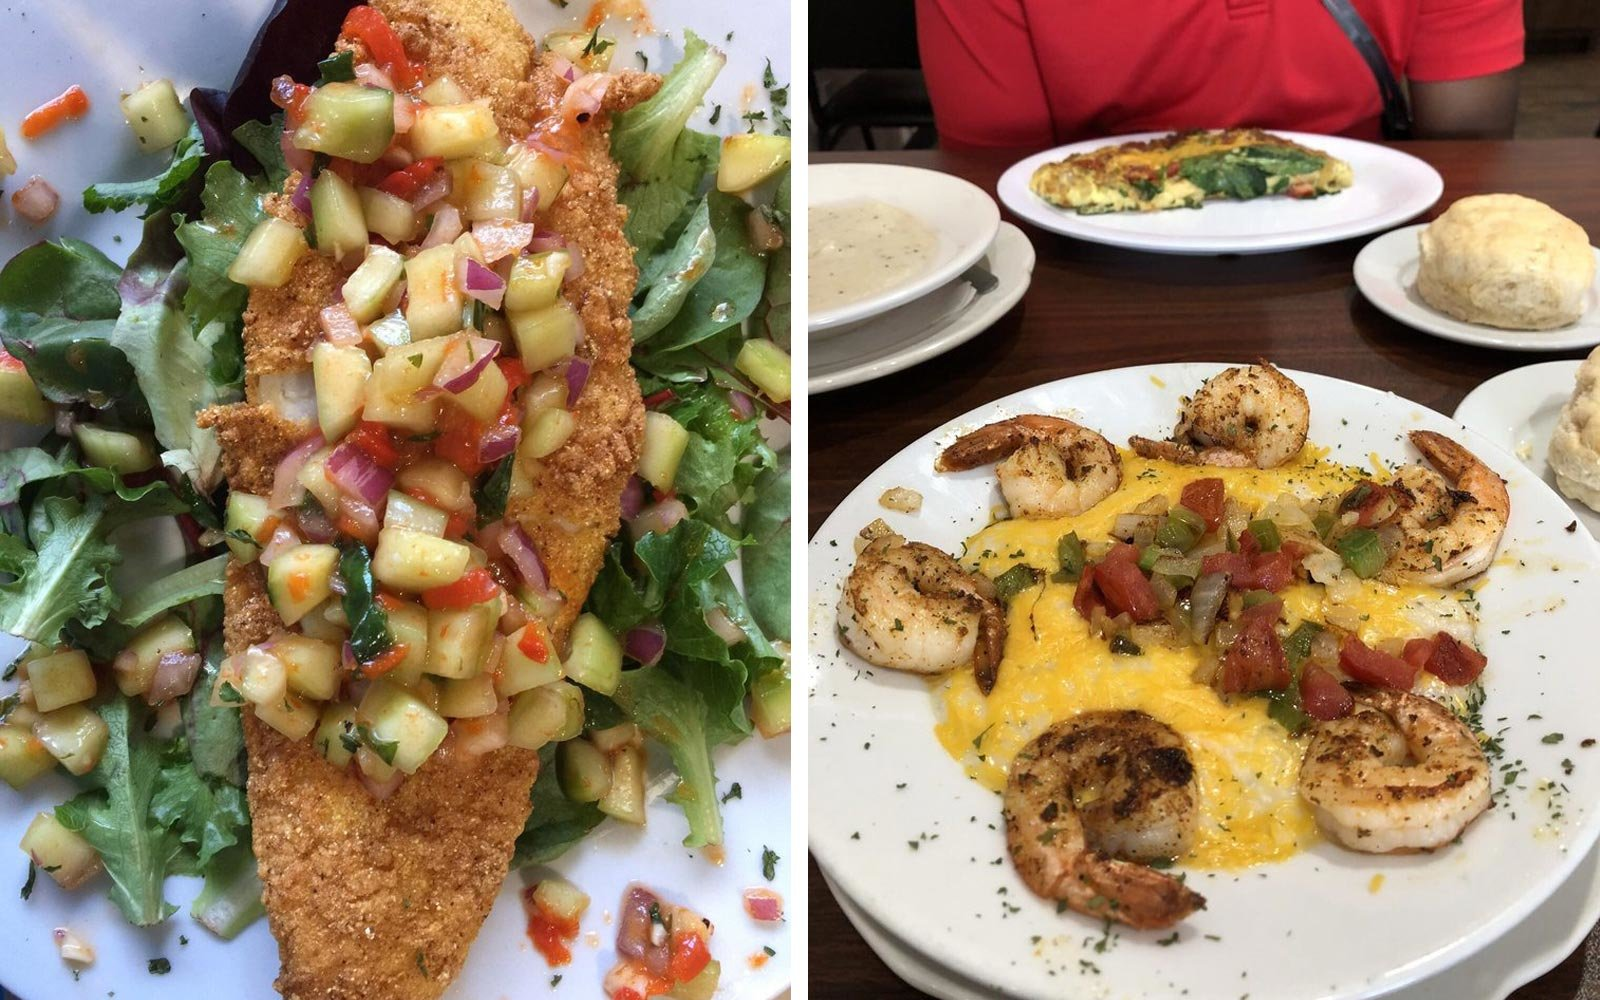 Southern Charm Cafe, Cape Canaveral, FL